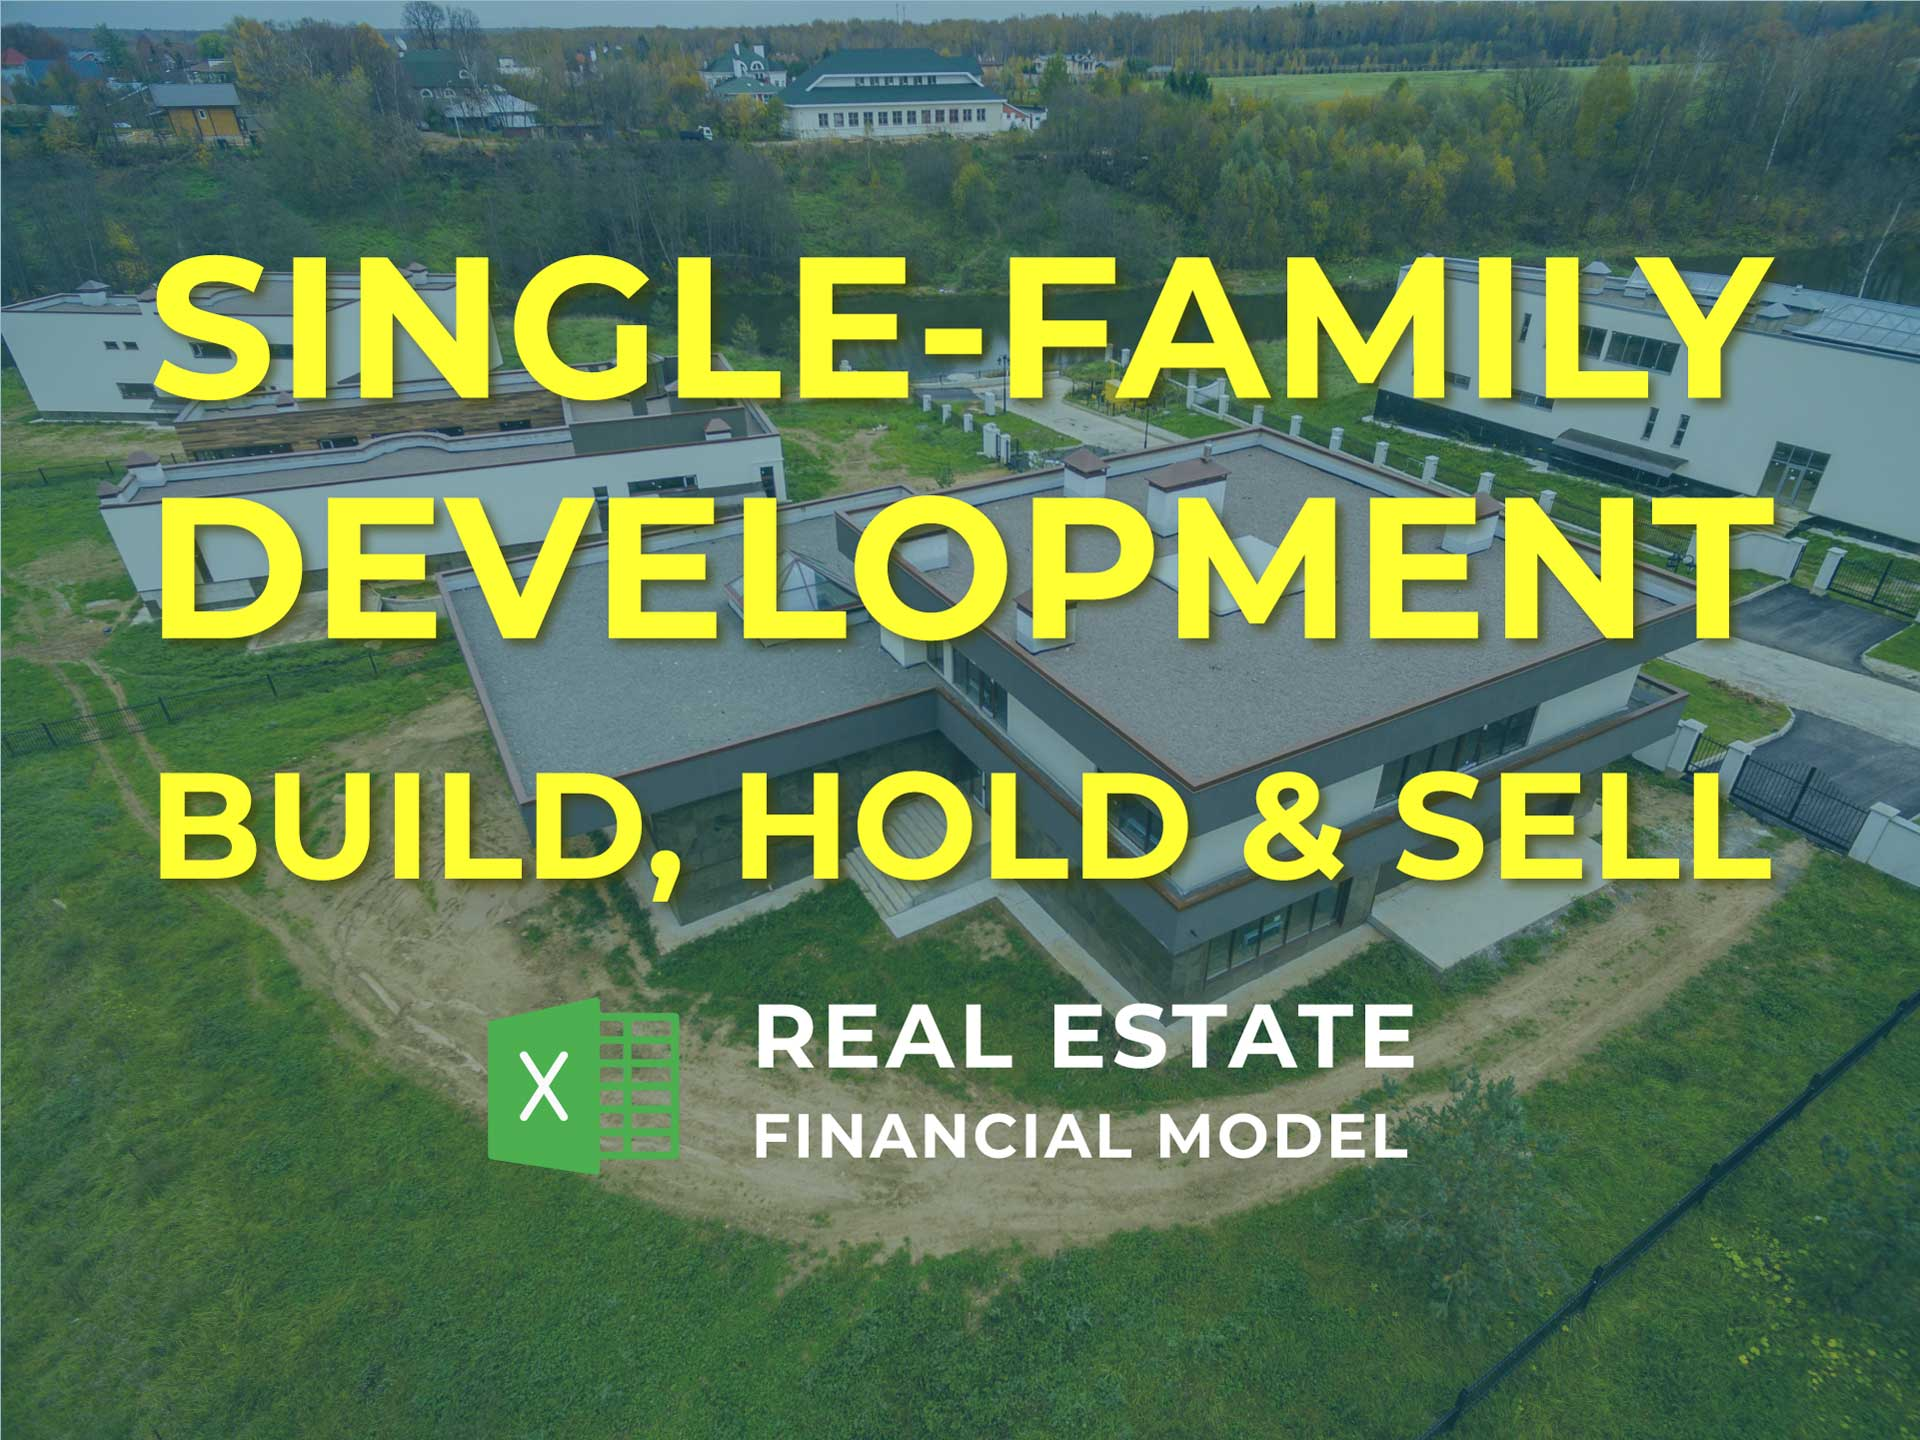 Single Family Development